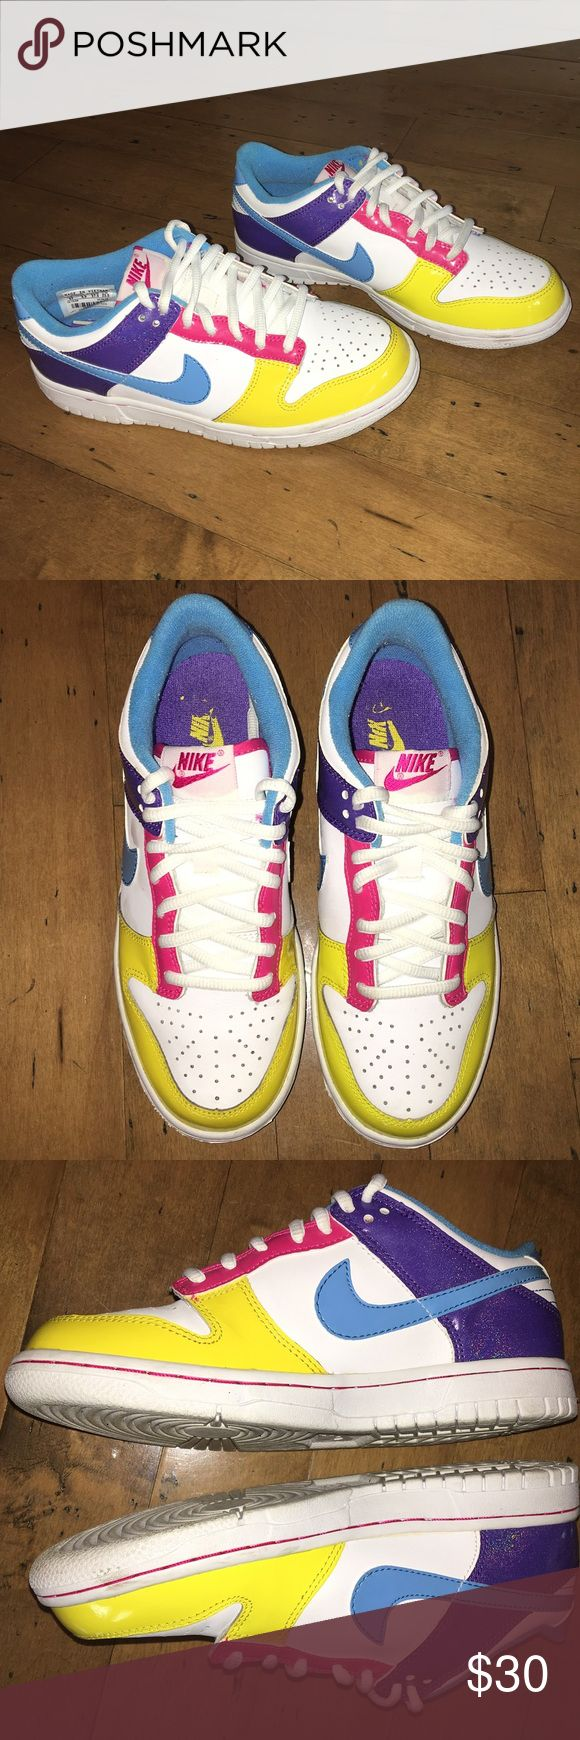 Nike Dunk SB Low Cut Yellow, pink, blue, and purple. Used only once or twice and never touched again. Excellent condition. Nike Shoes Sneakers